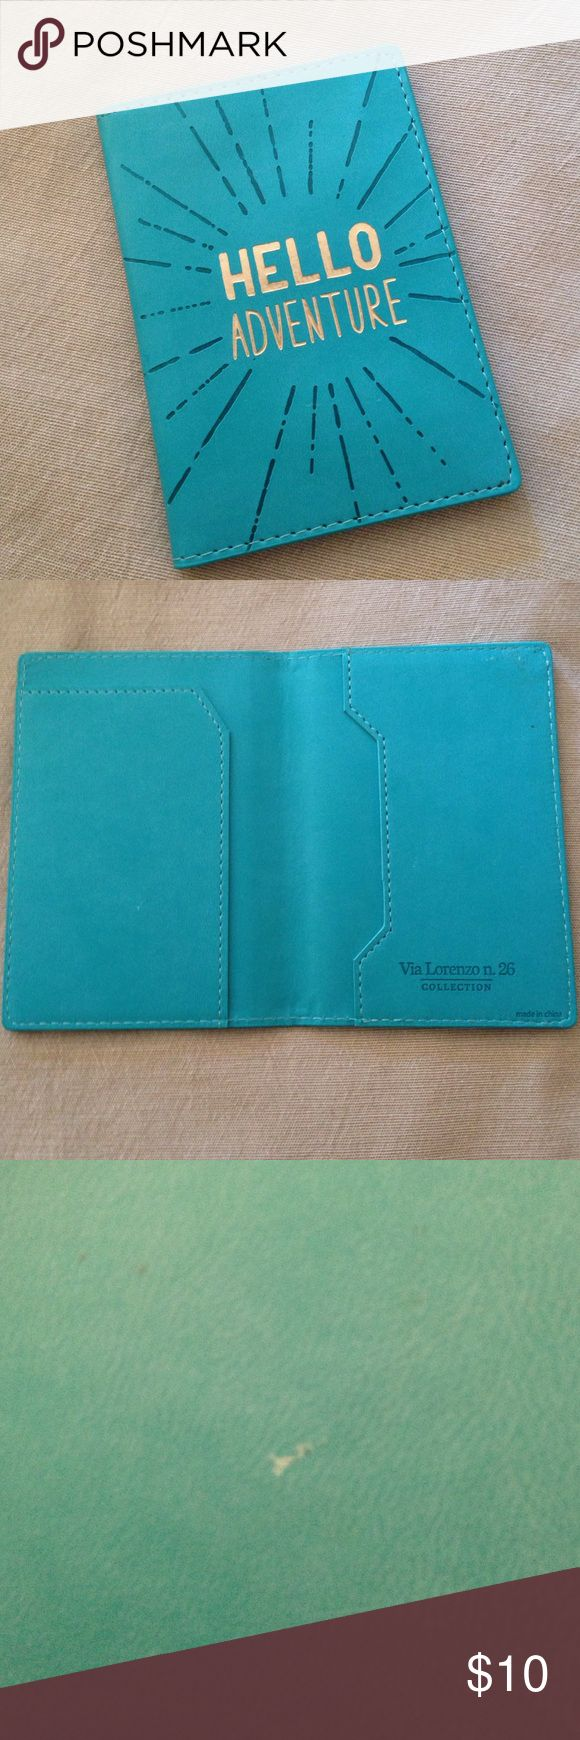 Fun passport case Pretty aqua blue and gold faux leather passport case! Used once. Small marks on the interior shown. These aren't very noticeable and are from the TSA who did my precheck number (thanks guys!). Getting rid of this because my husband got me a Mulberry case for my birthday! Via lorenzo collection Accessories